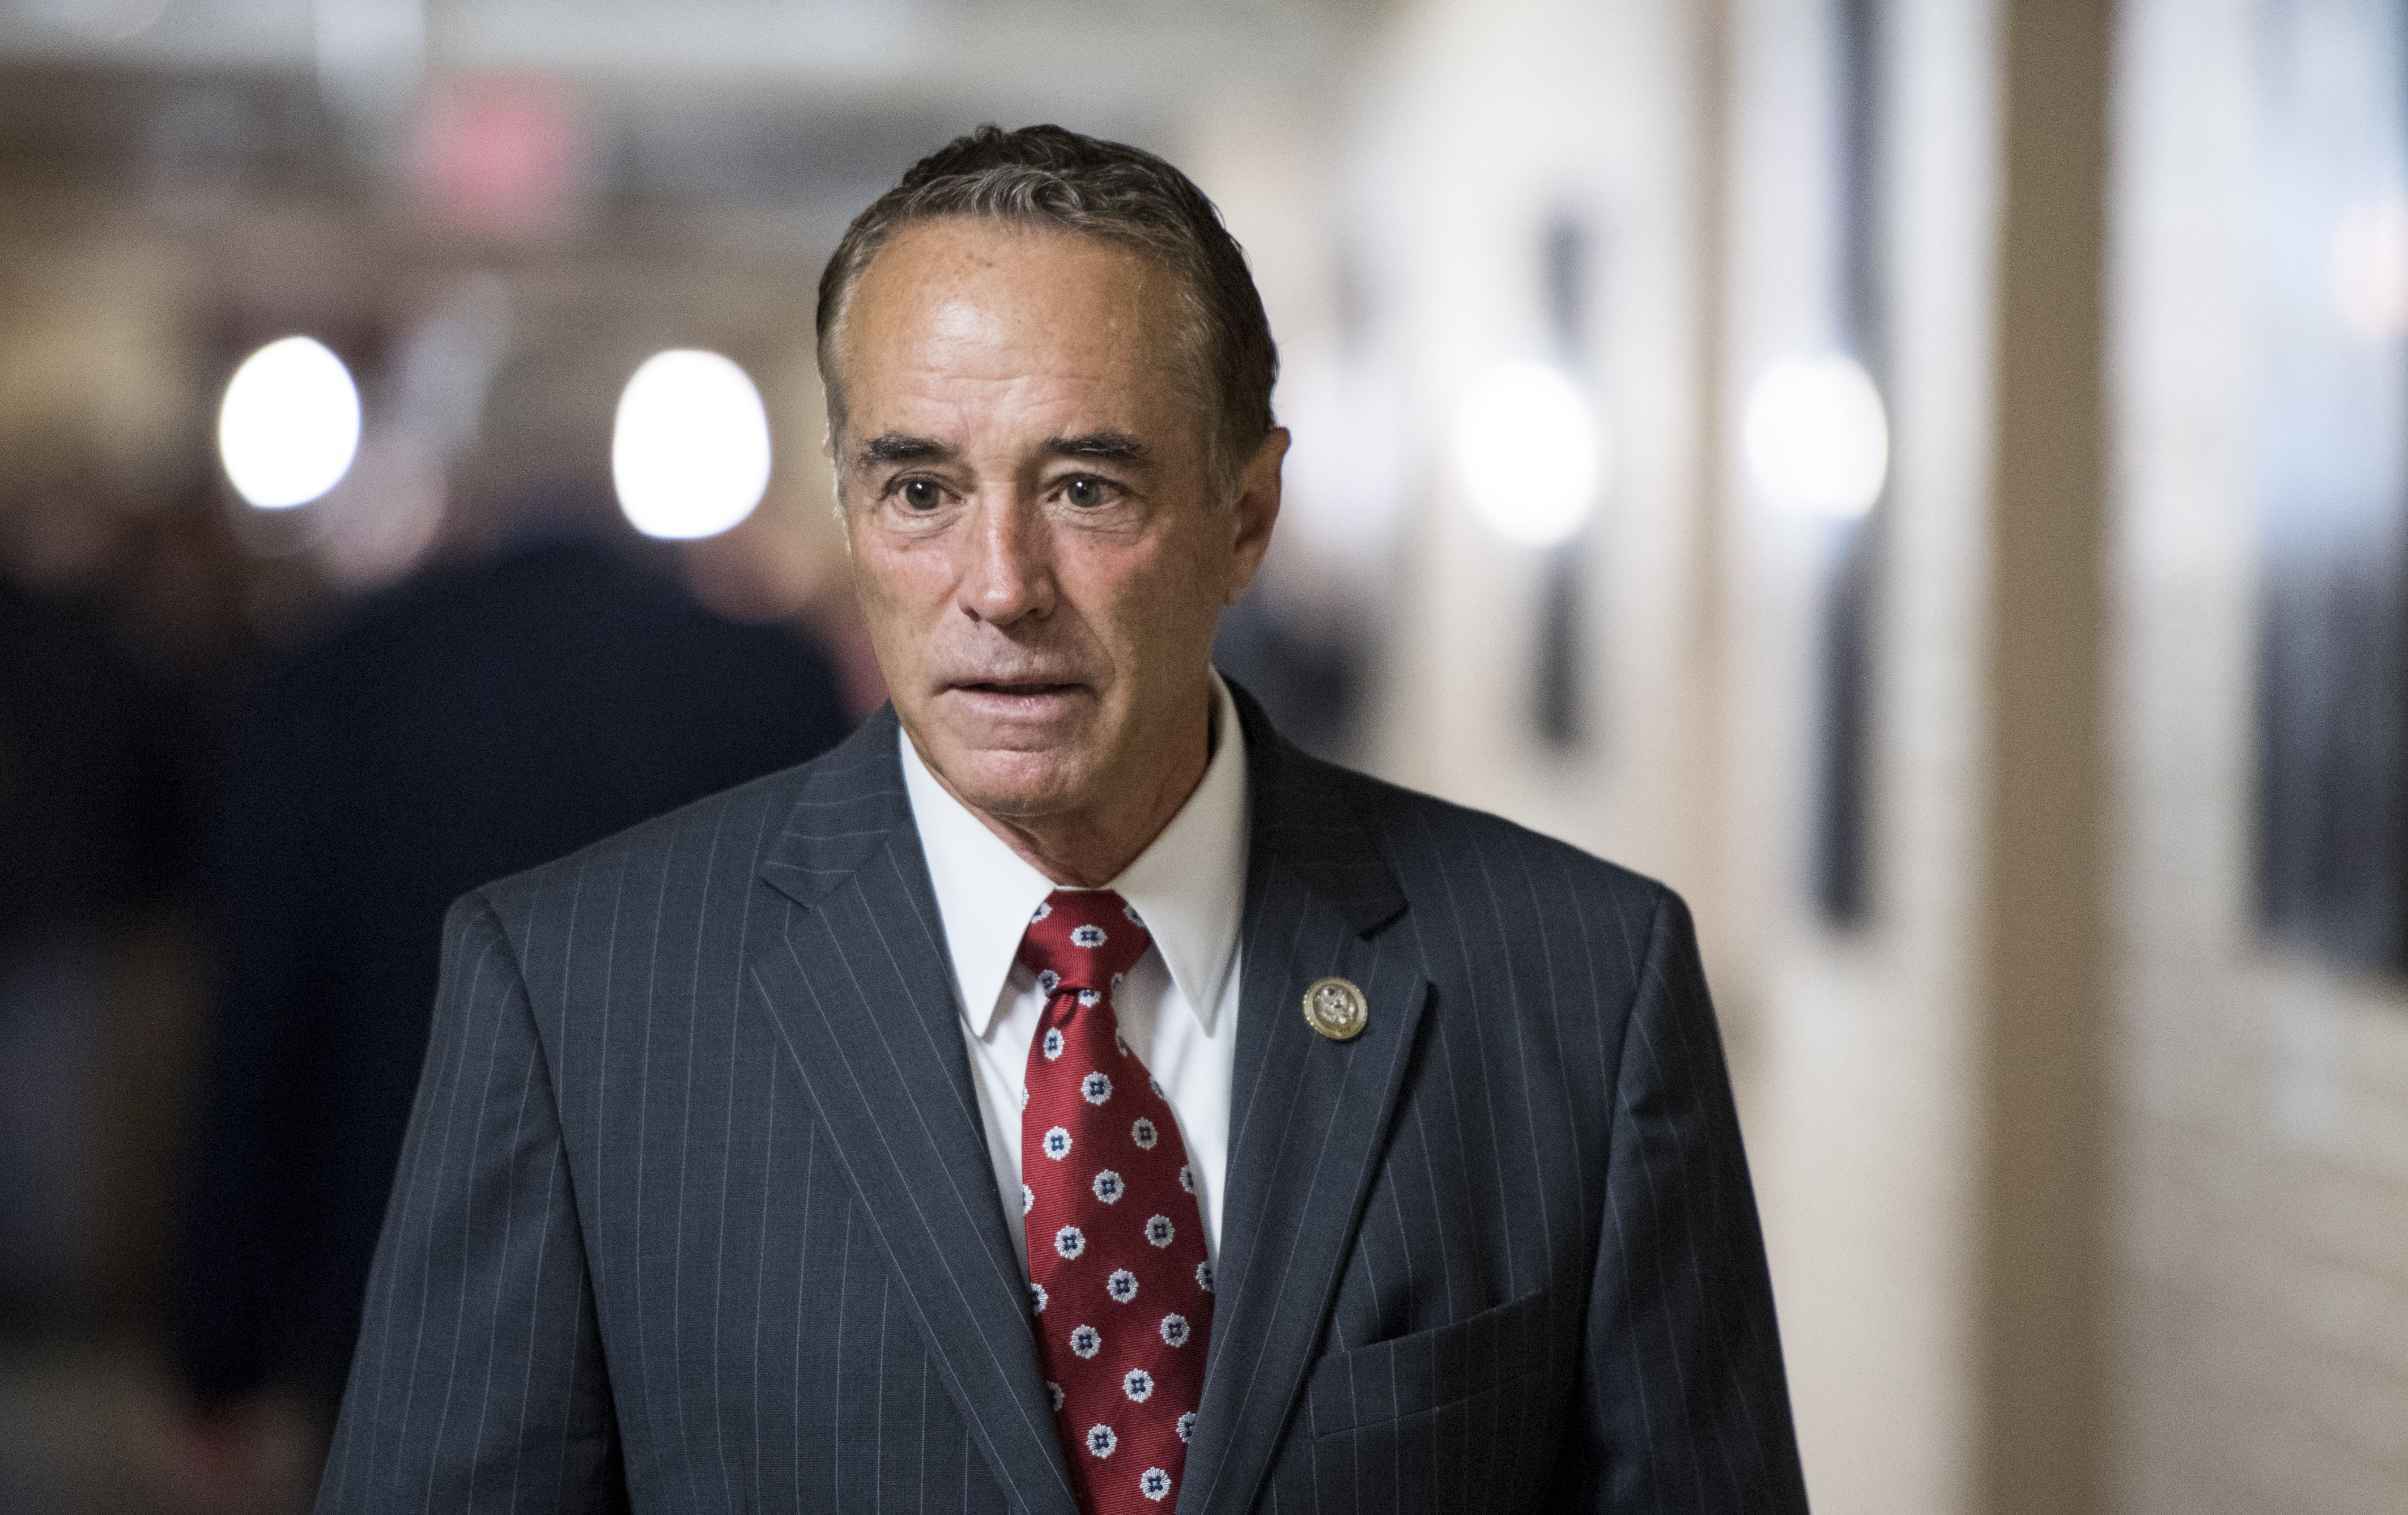 Prosecutors recommend almost 5 years in prison for former GOP Rep. Chris Collins